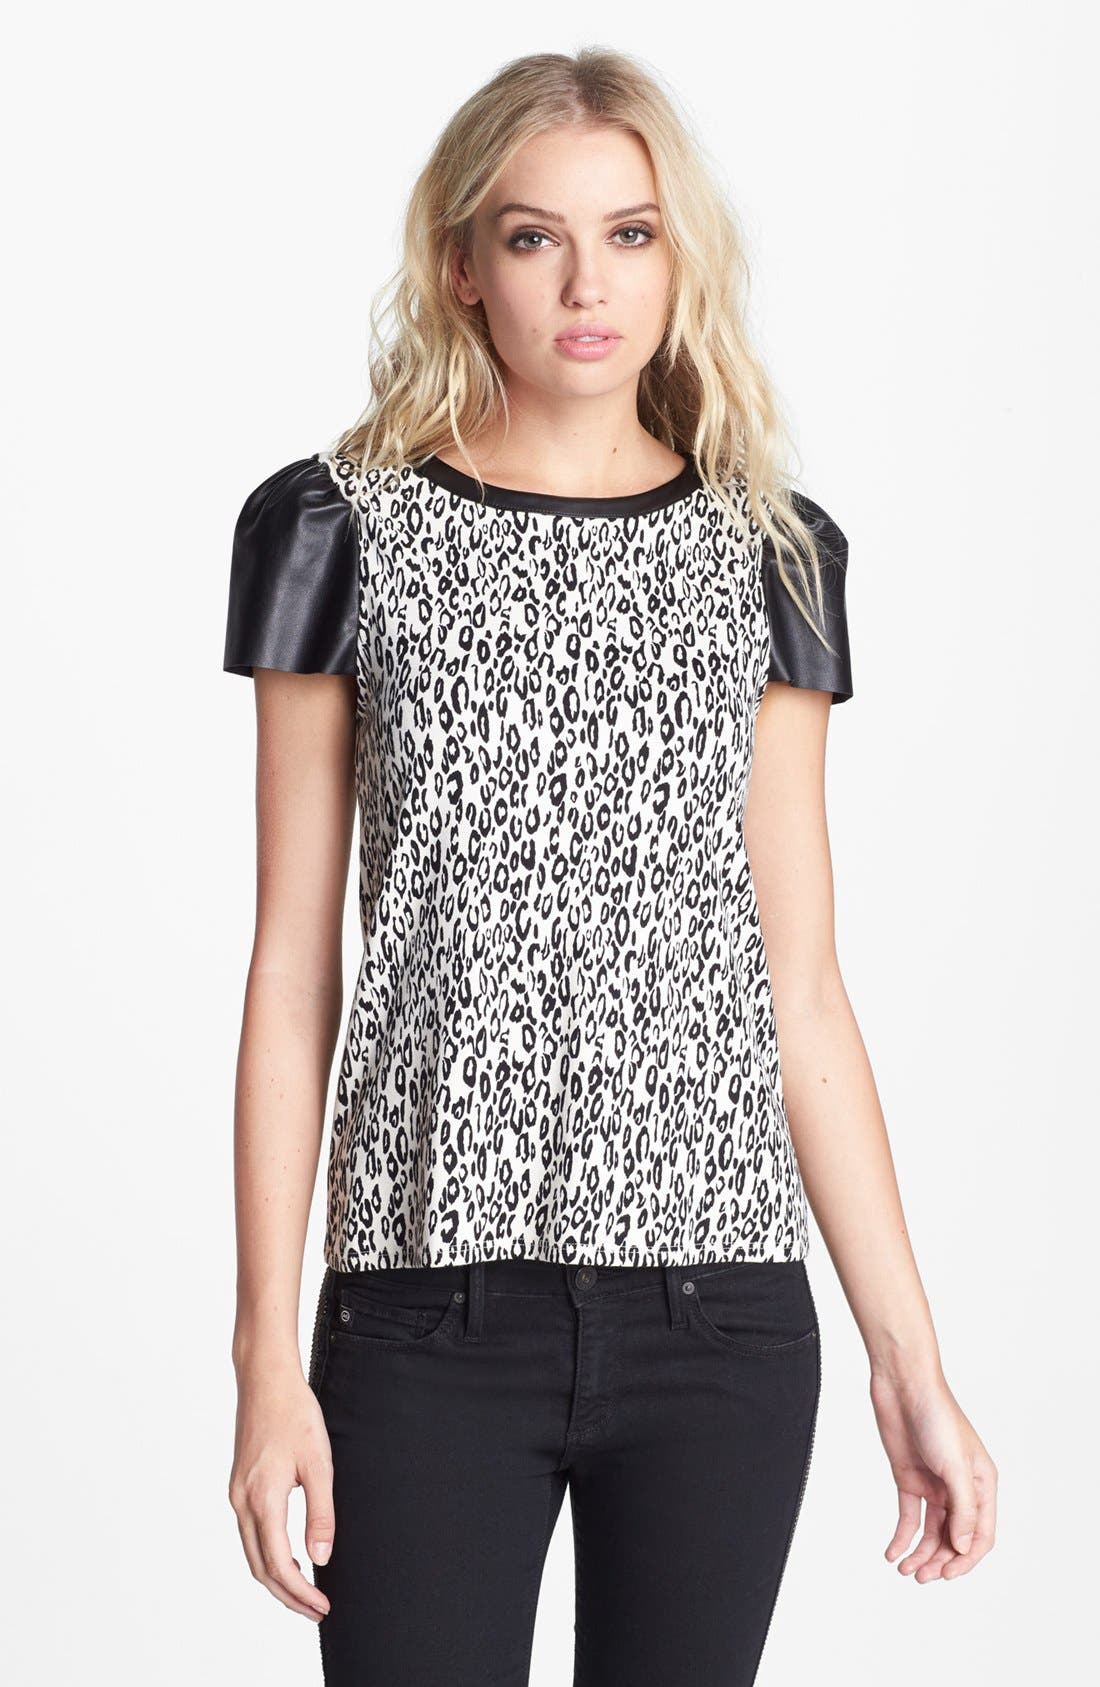 Main Image - Ella Moss 'Frankie' Faux Leather Sleeve Top